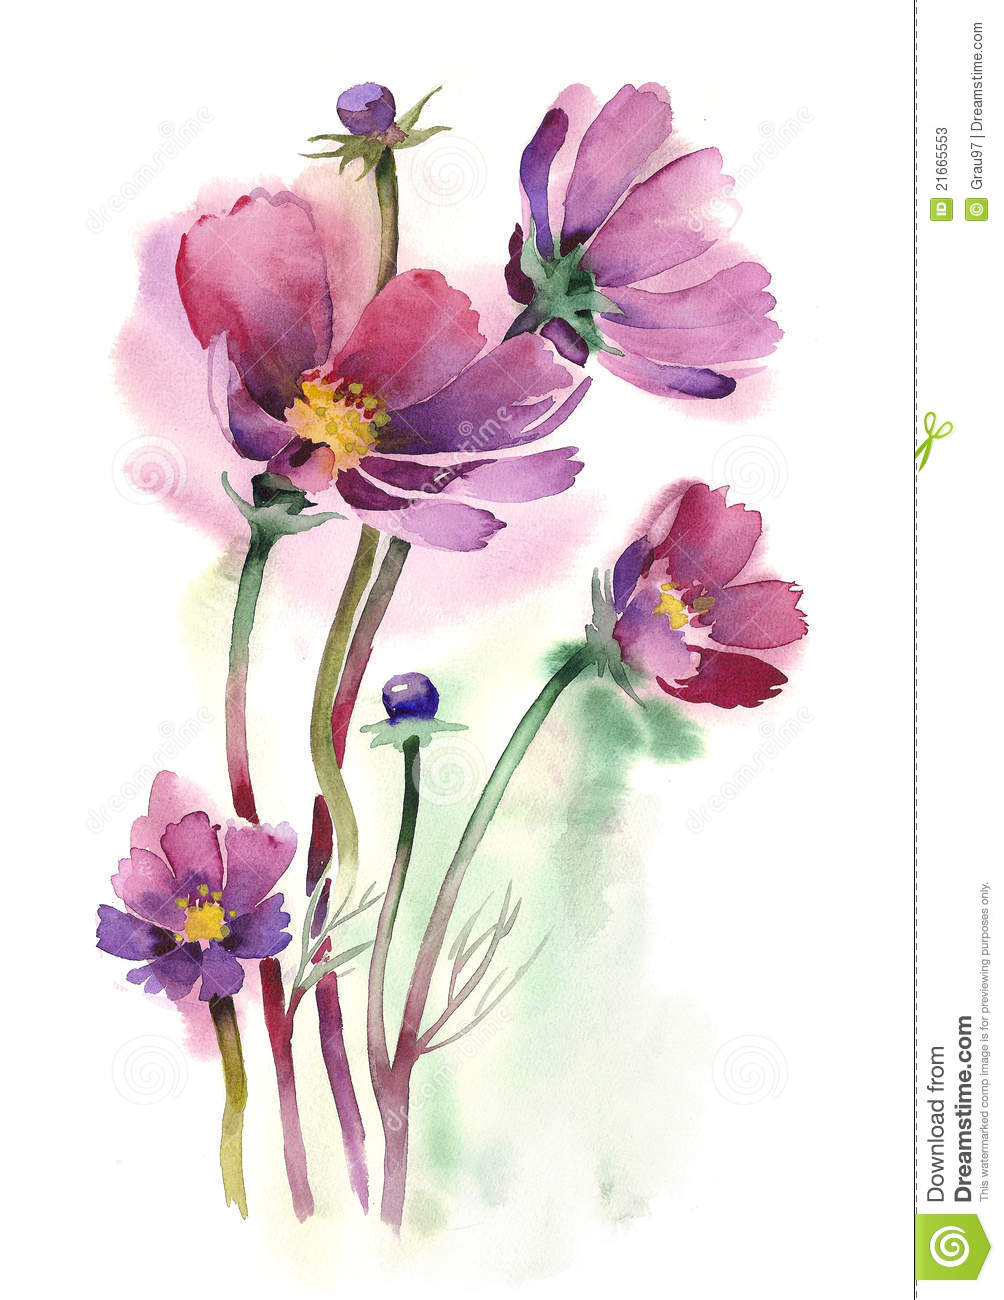 watercolor cosmos flowers stock illustration illustration of